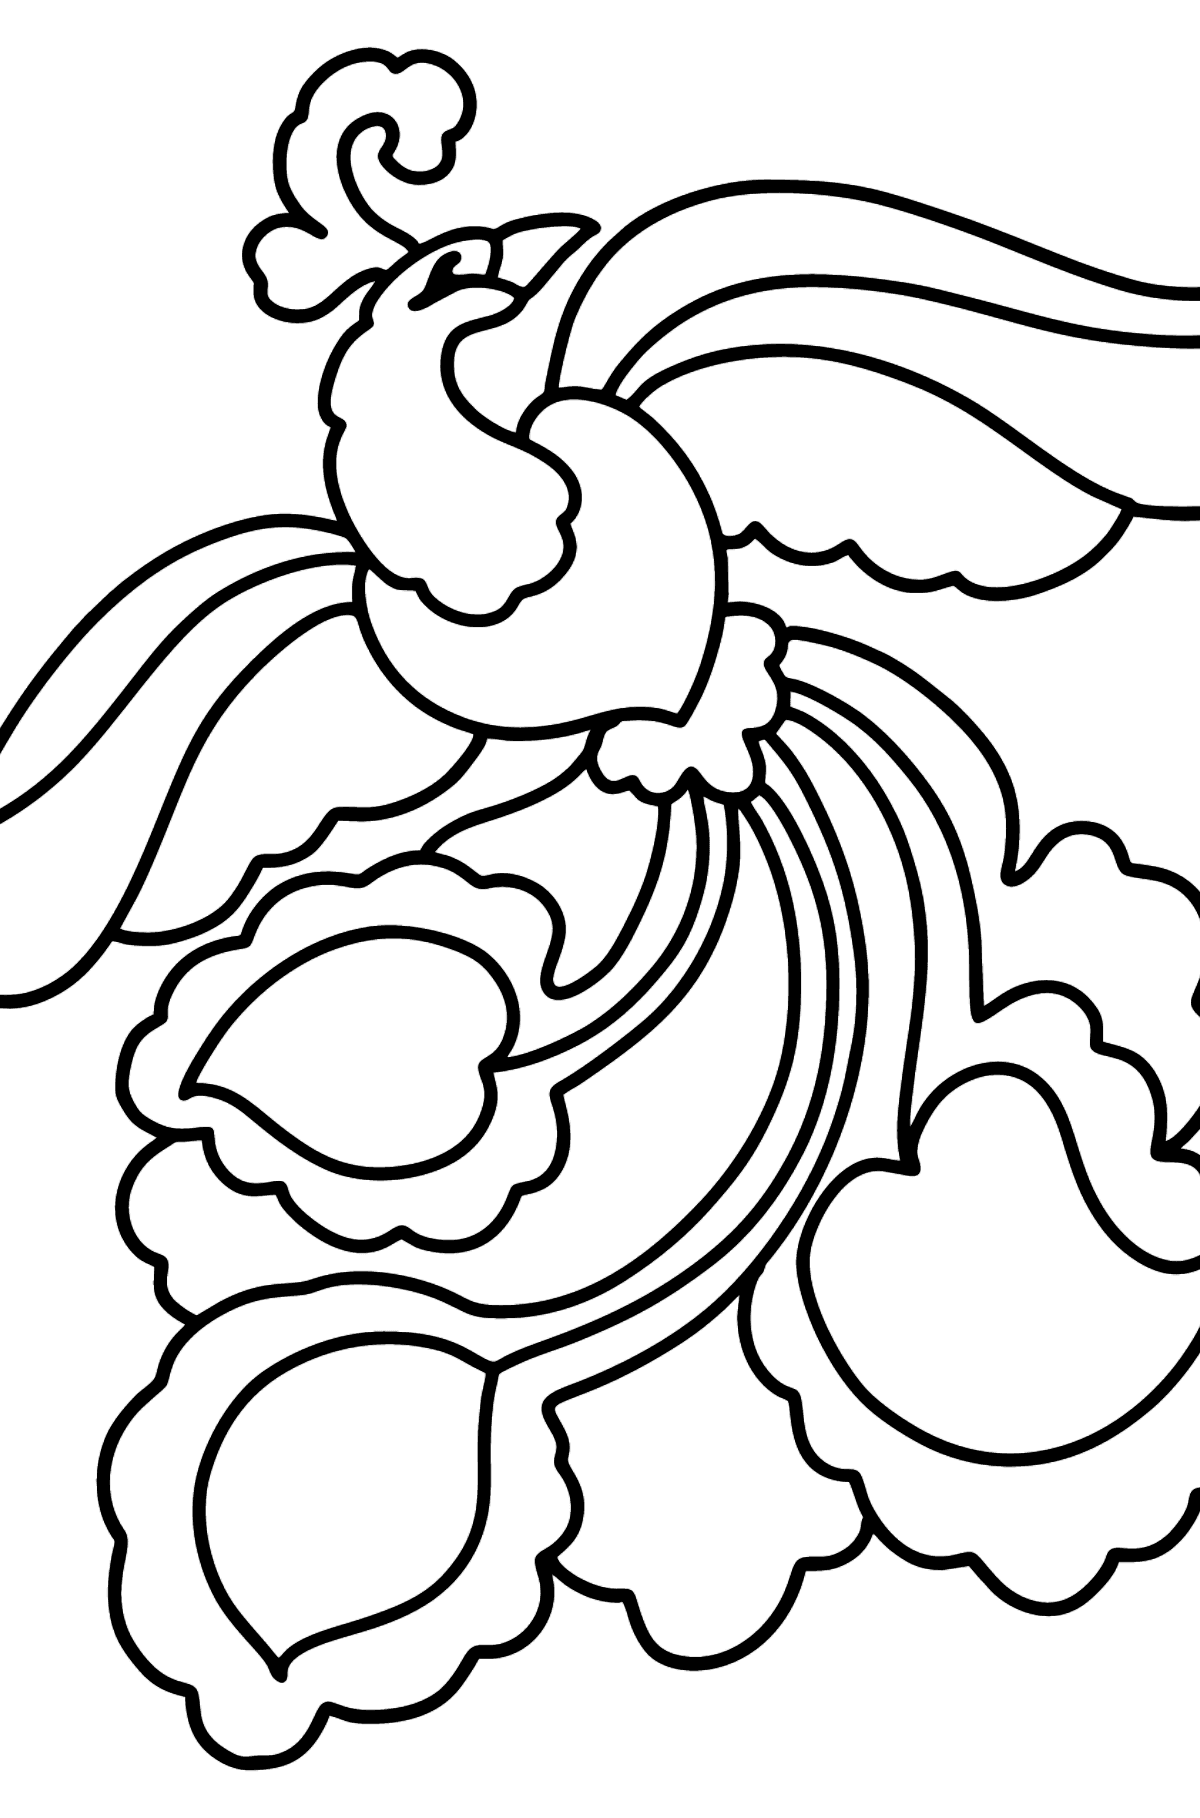 Phoenix coloring page - Coloring Pages for Kids